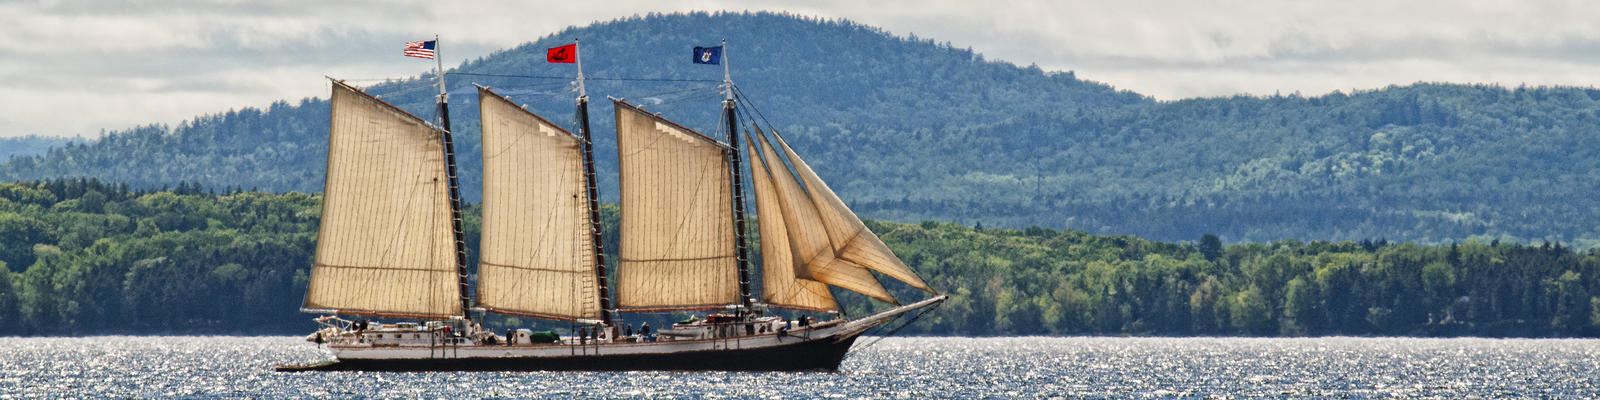 Victory Chimes Photo Maine Windjammer Ociation